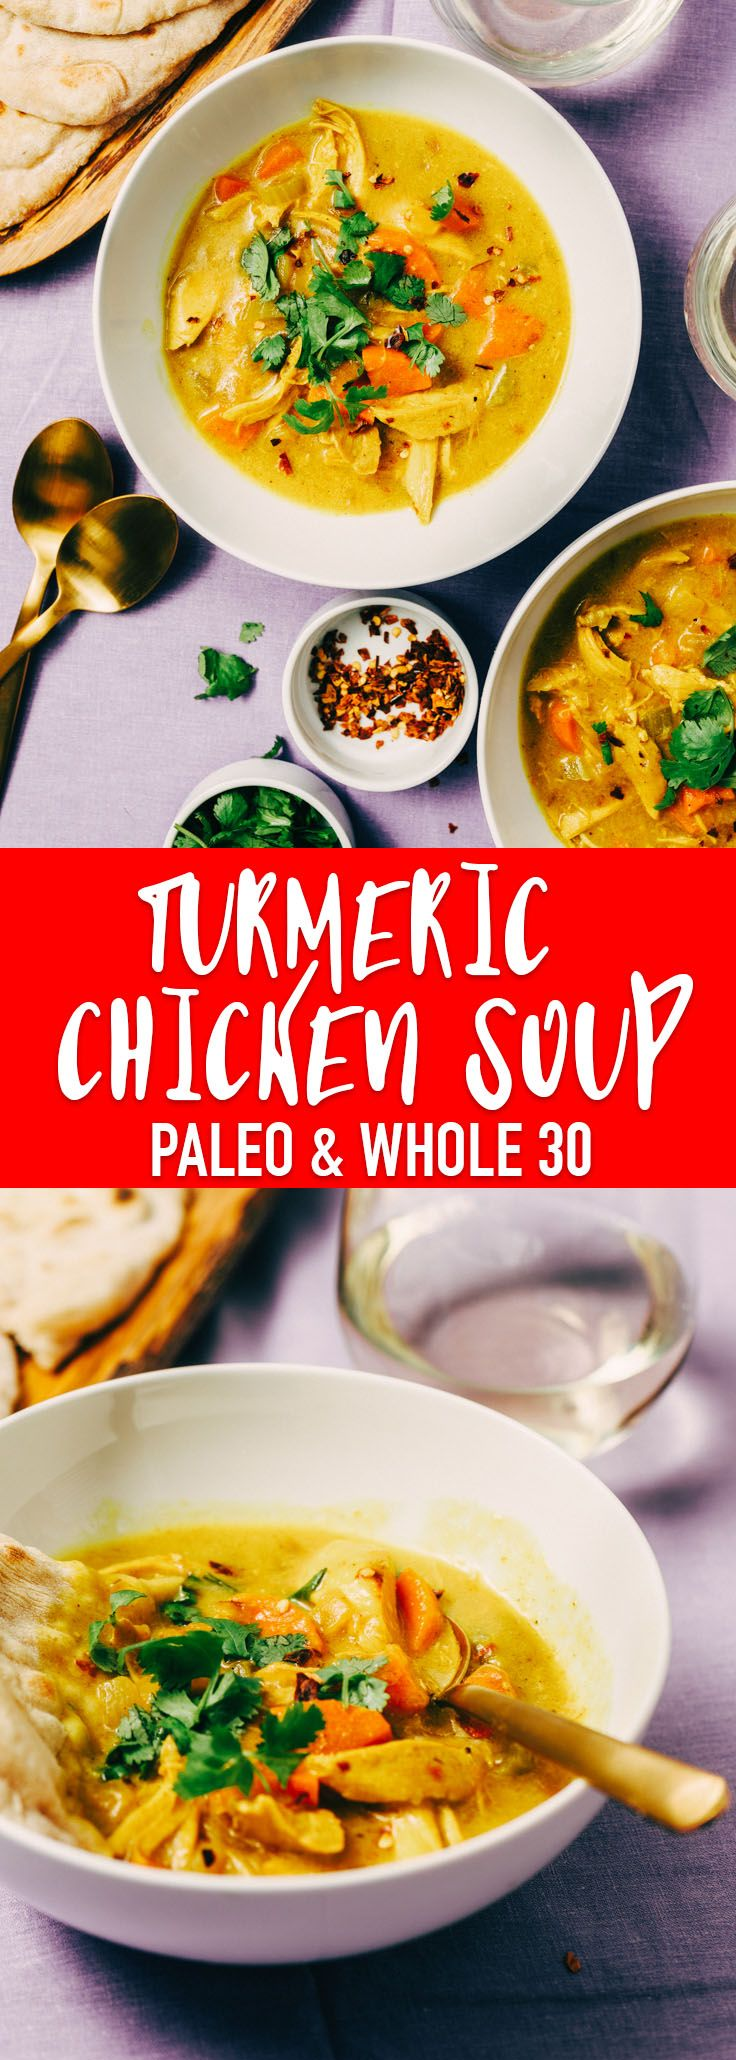 The tang and spice of fresh turmeric root really shines in this easy weeknight turmeric chicken soup. It's naturally gluten-free, paleo, and whole 30 compliant. #turmeric #chickensoup #paleo #whole30 #recipe #realfood #wholefoods